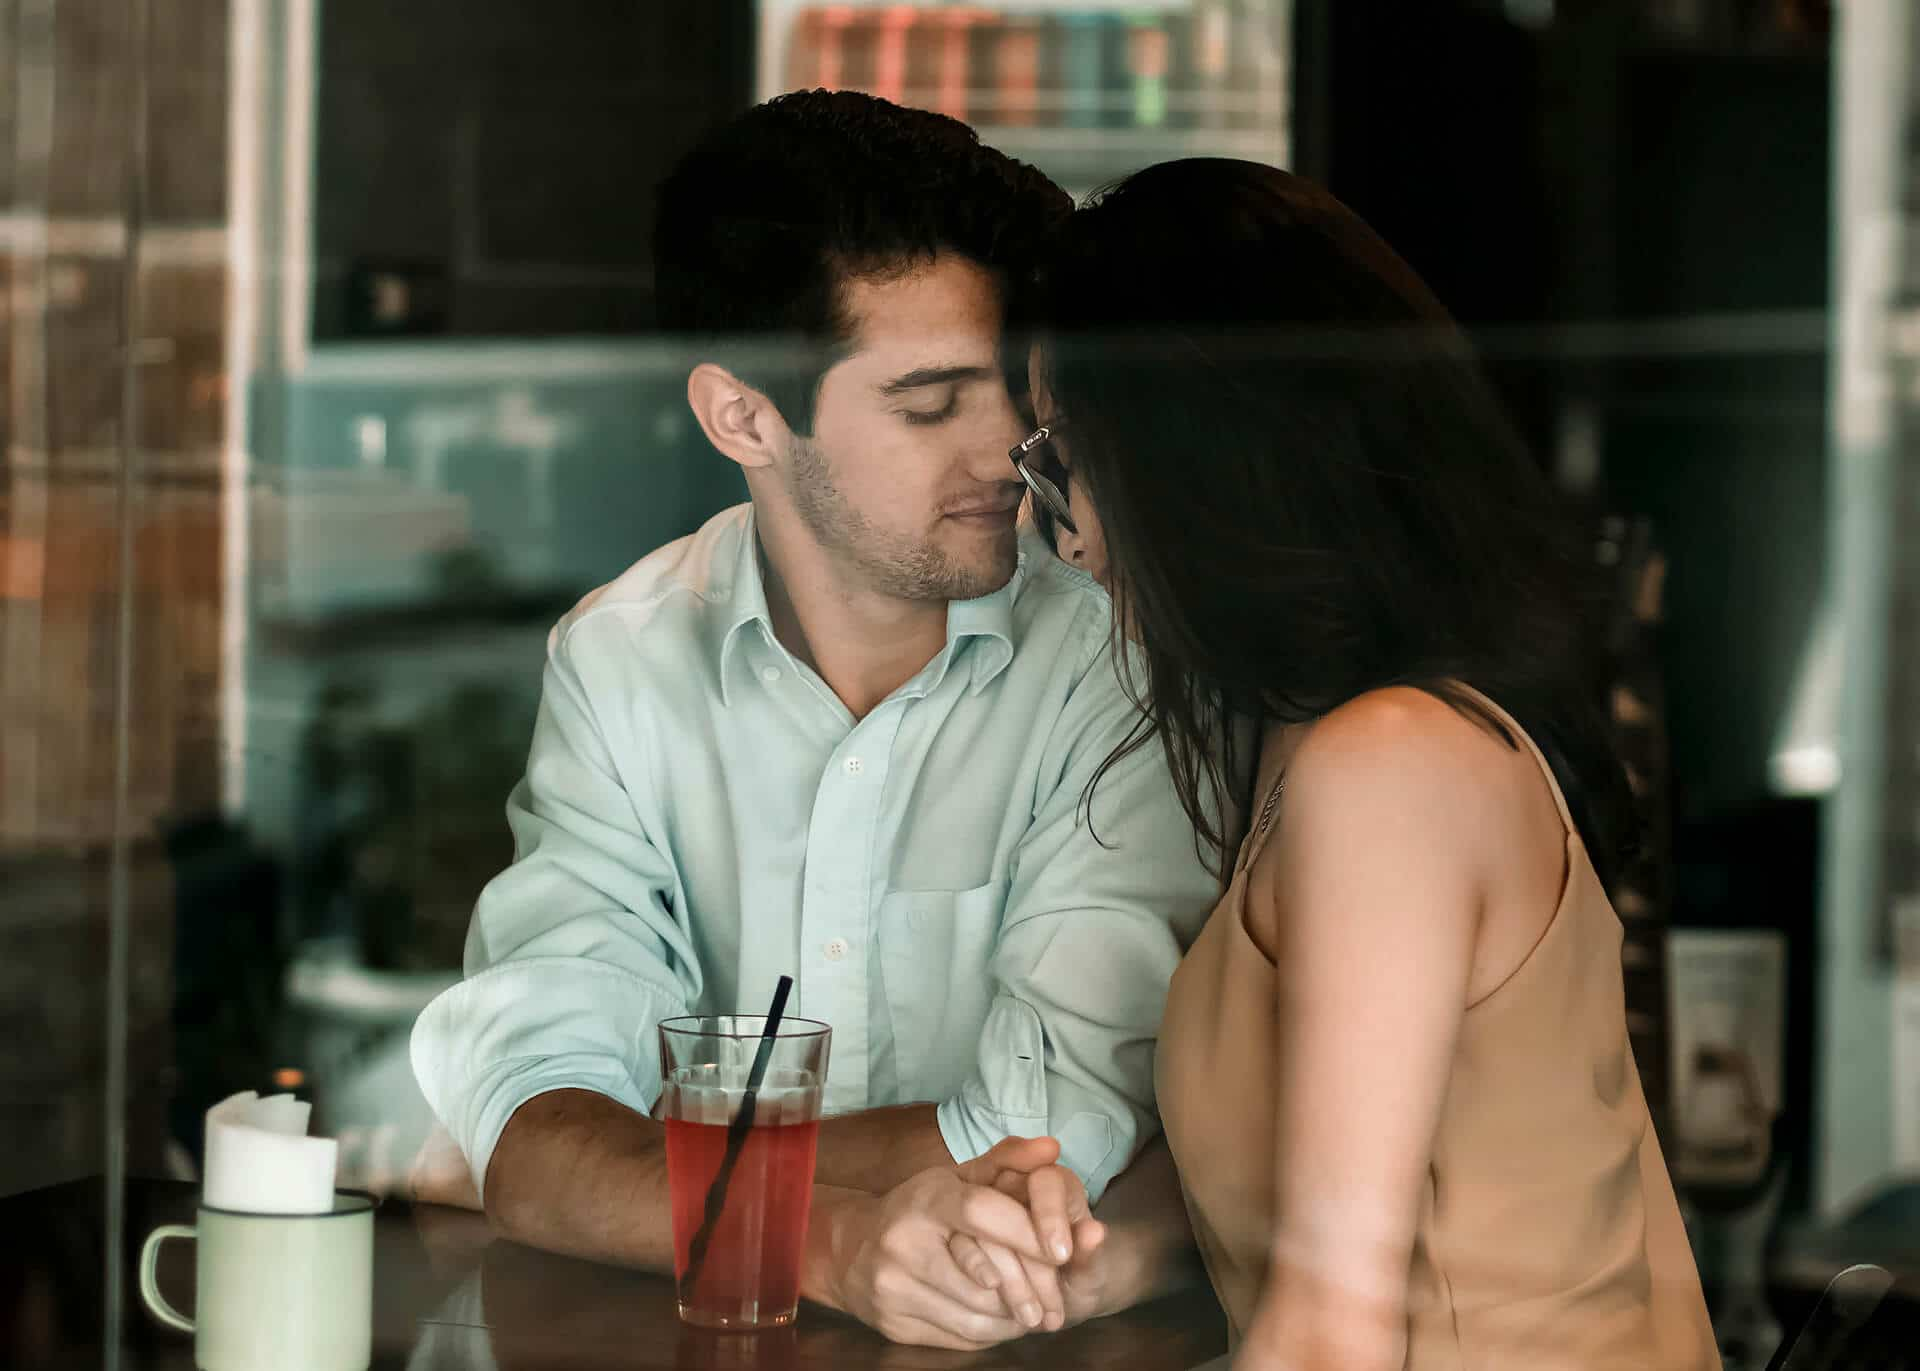 Man showing signs he loves you deeply